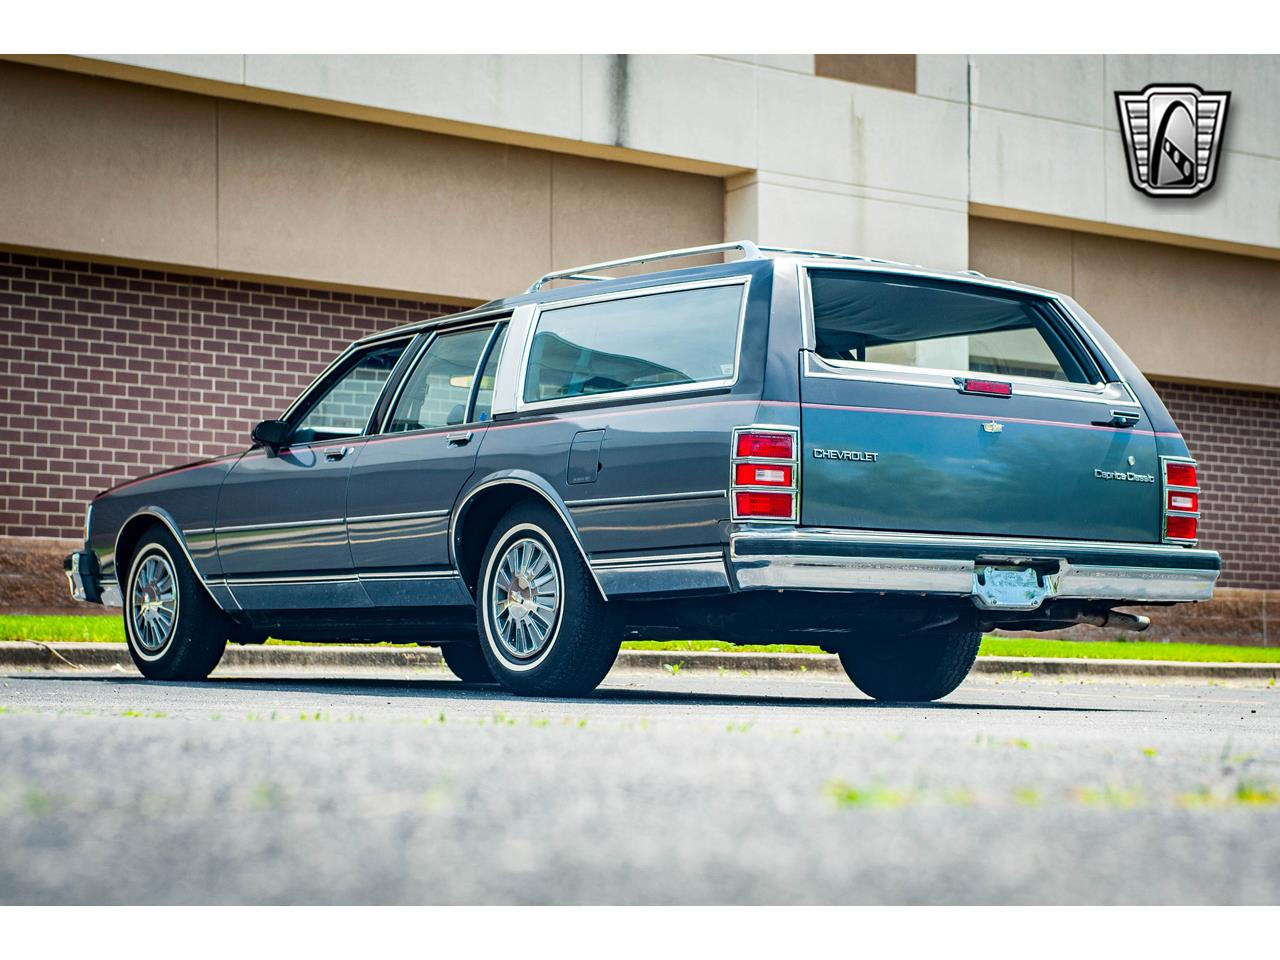 Large Picture of 1989 Chevrolet Caprice located in Illinois - $17,995.00 - QB9K